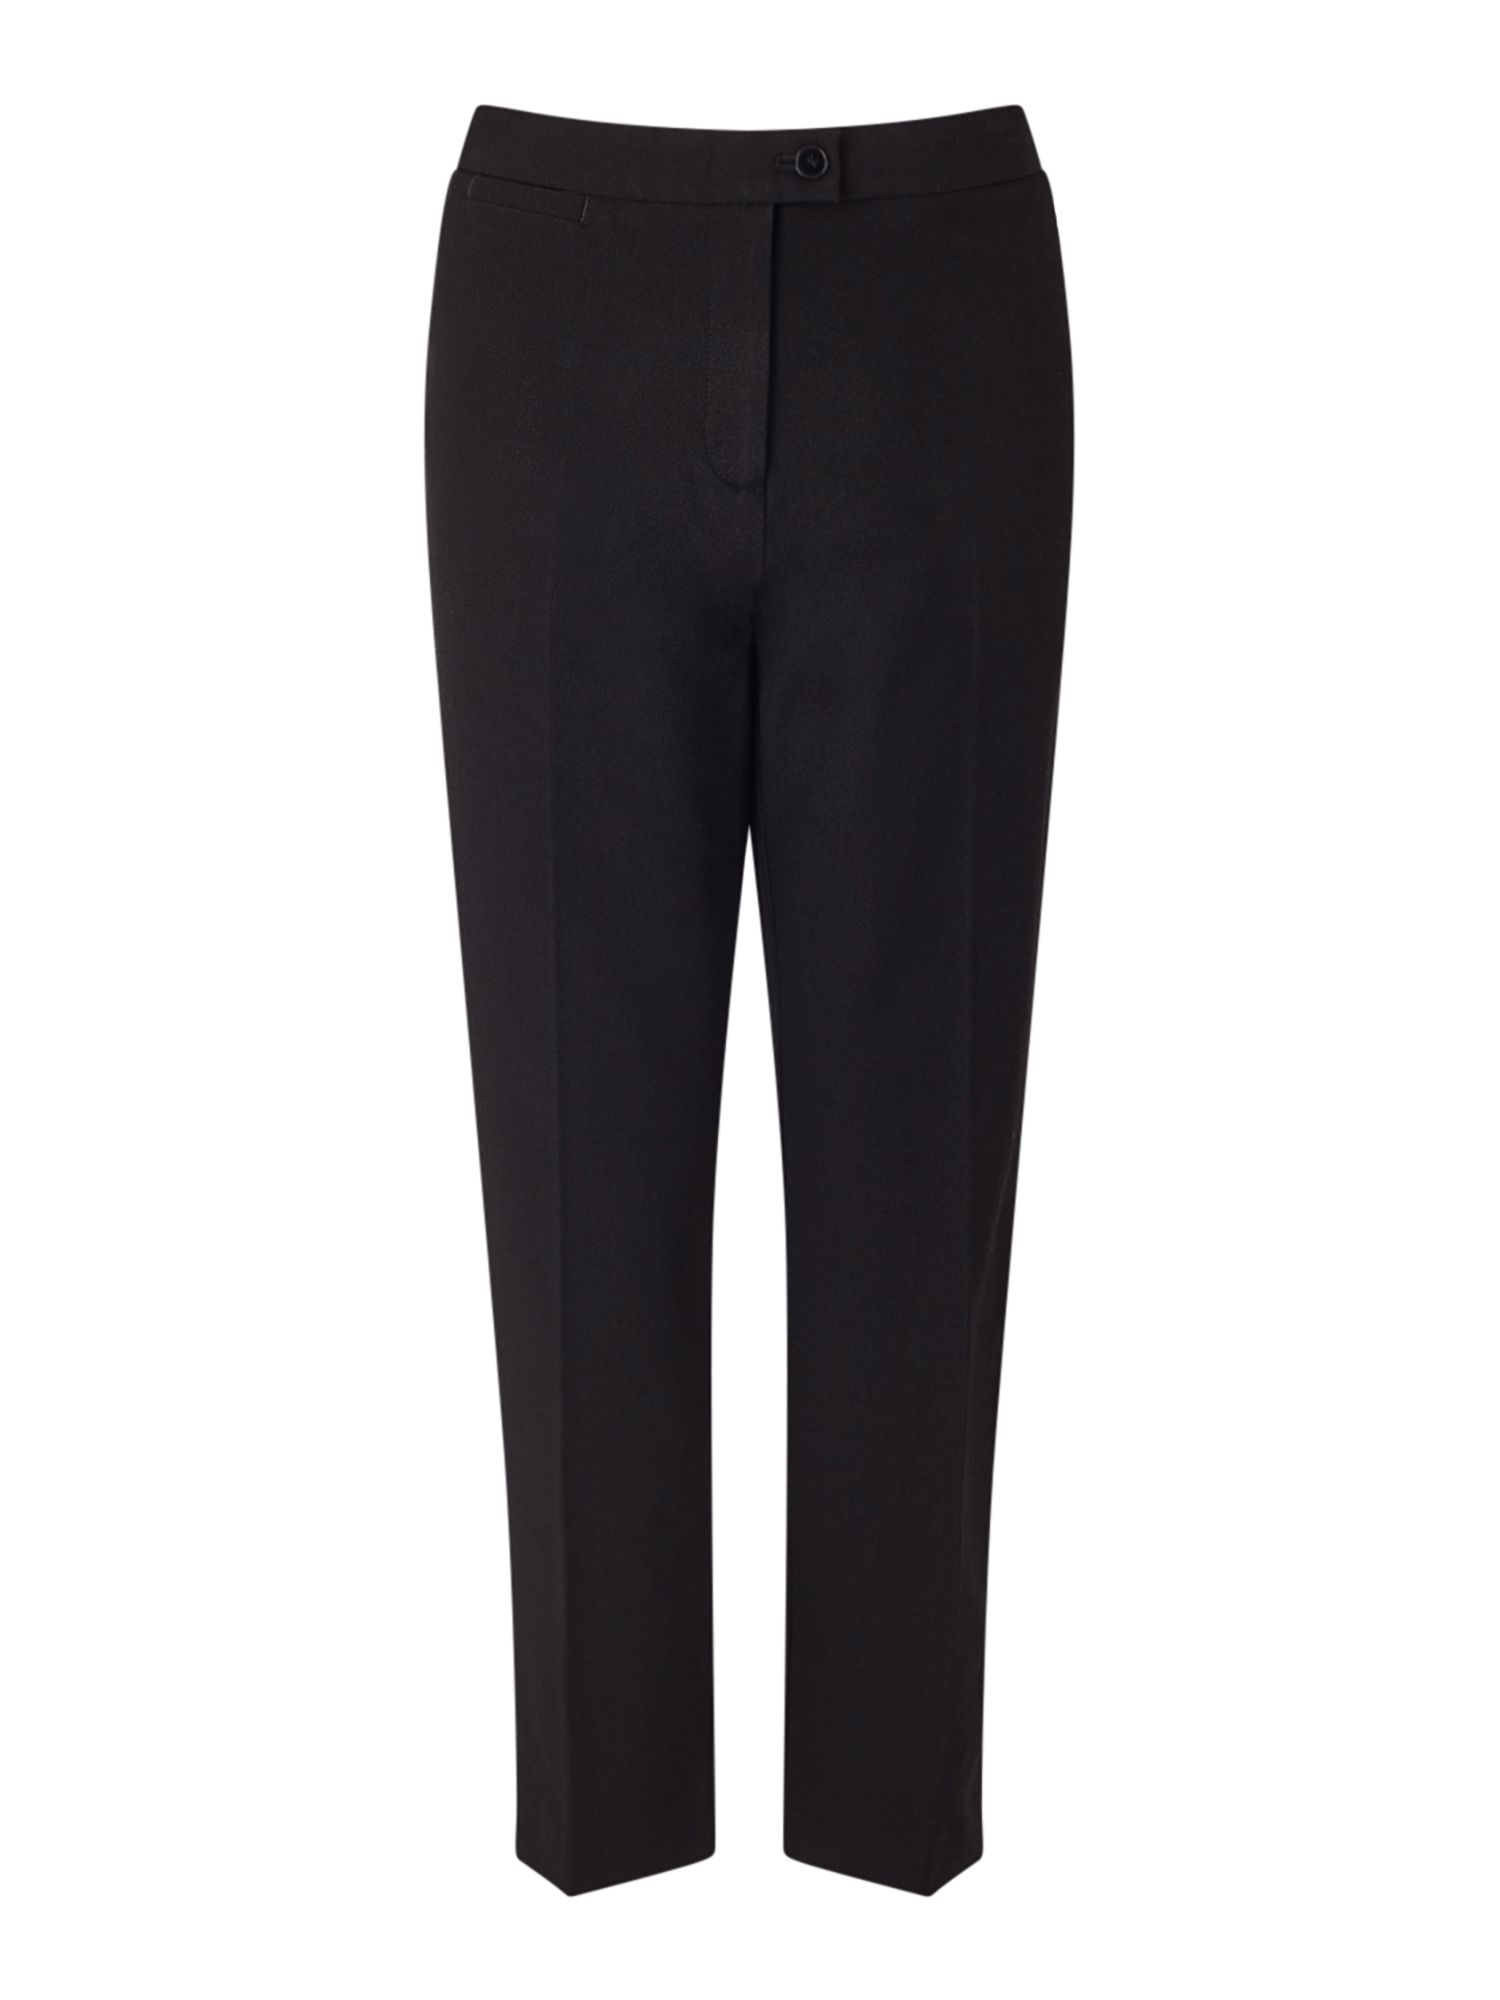 Jigsaw Bi Stretch Cigarette Trouser, Black